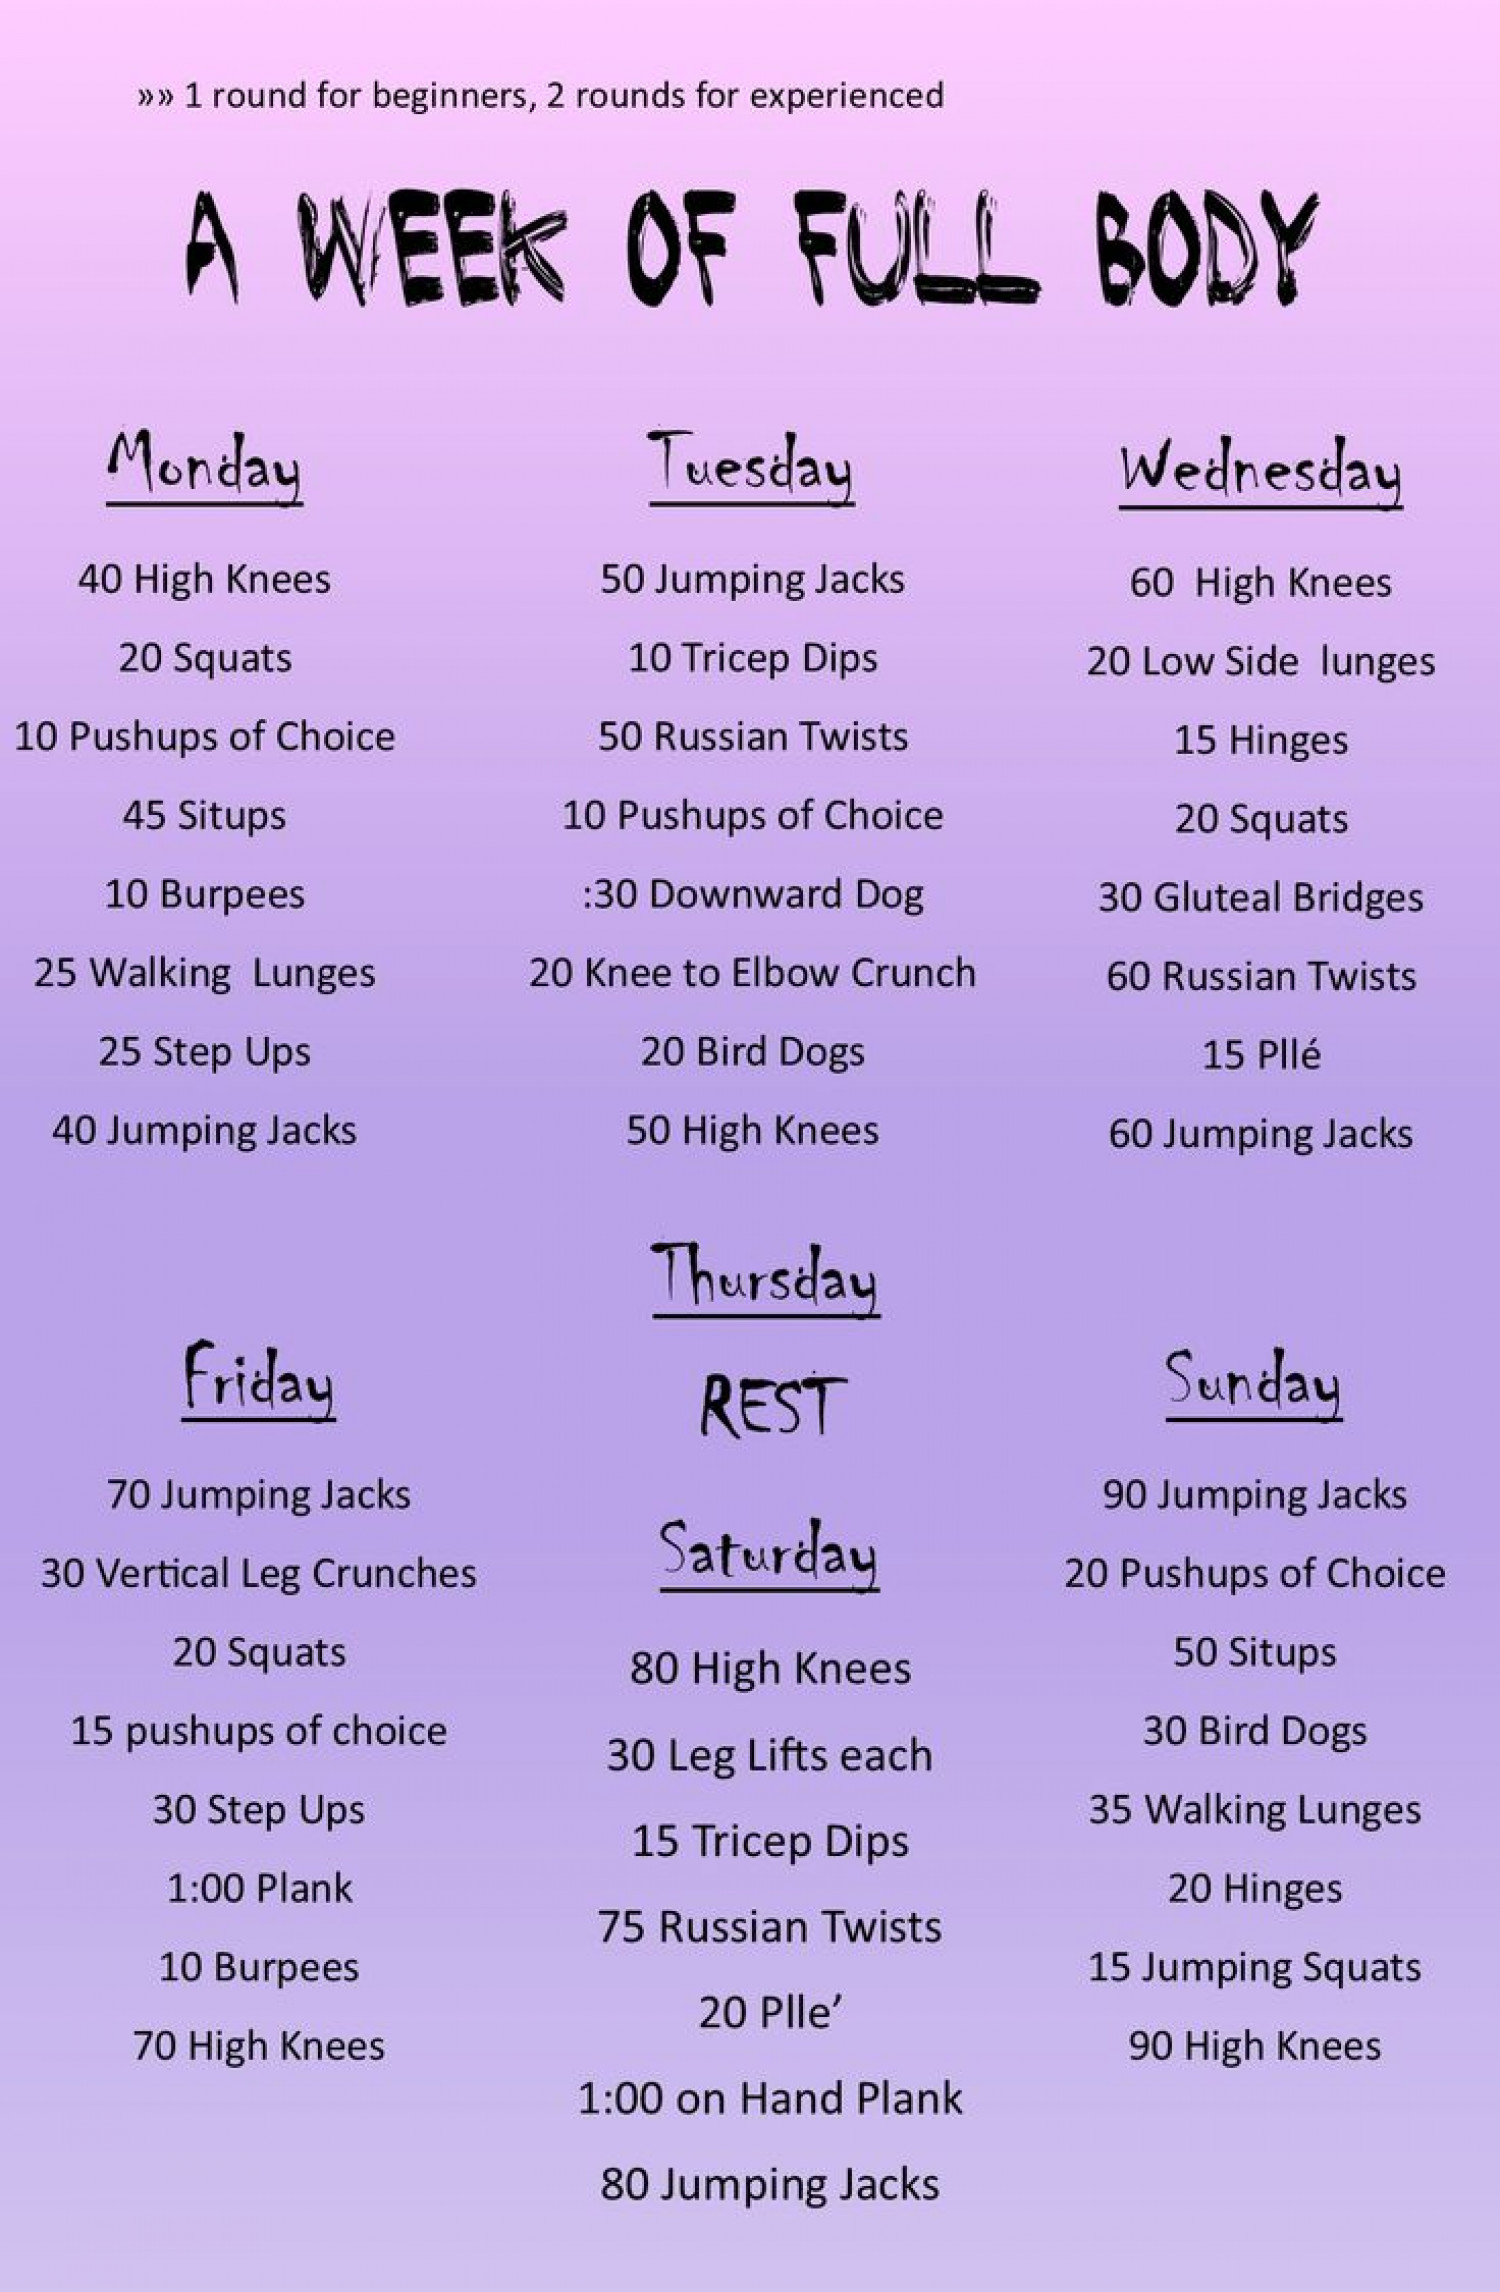 Daily Full body workout | Visual.ly